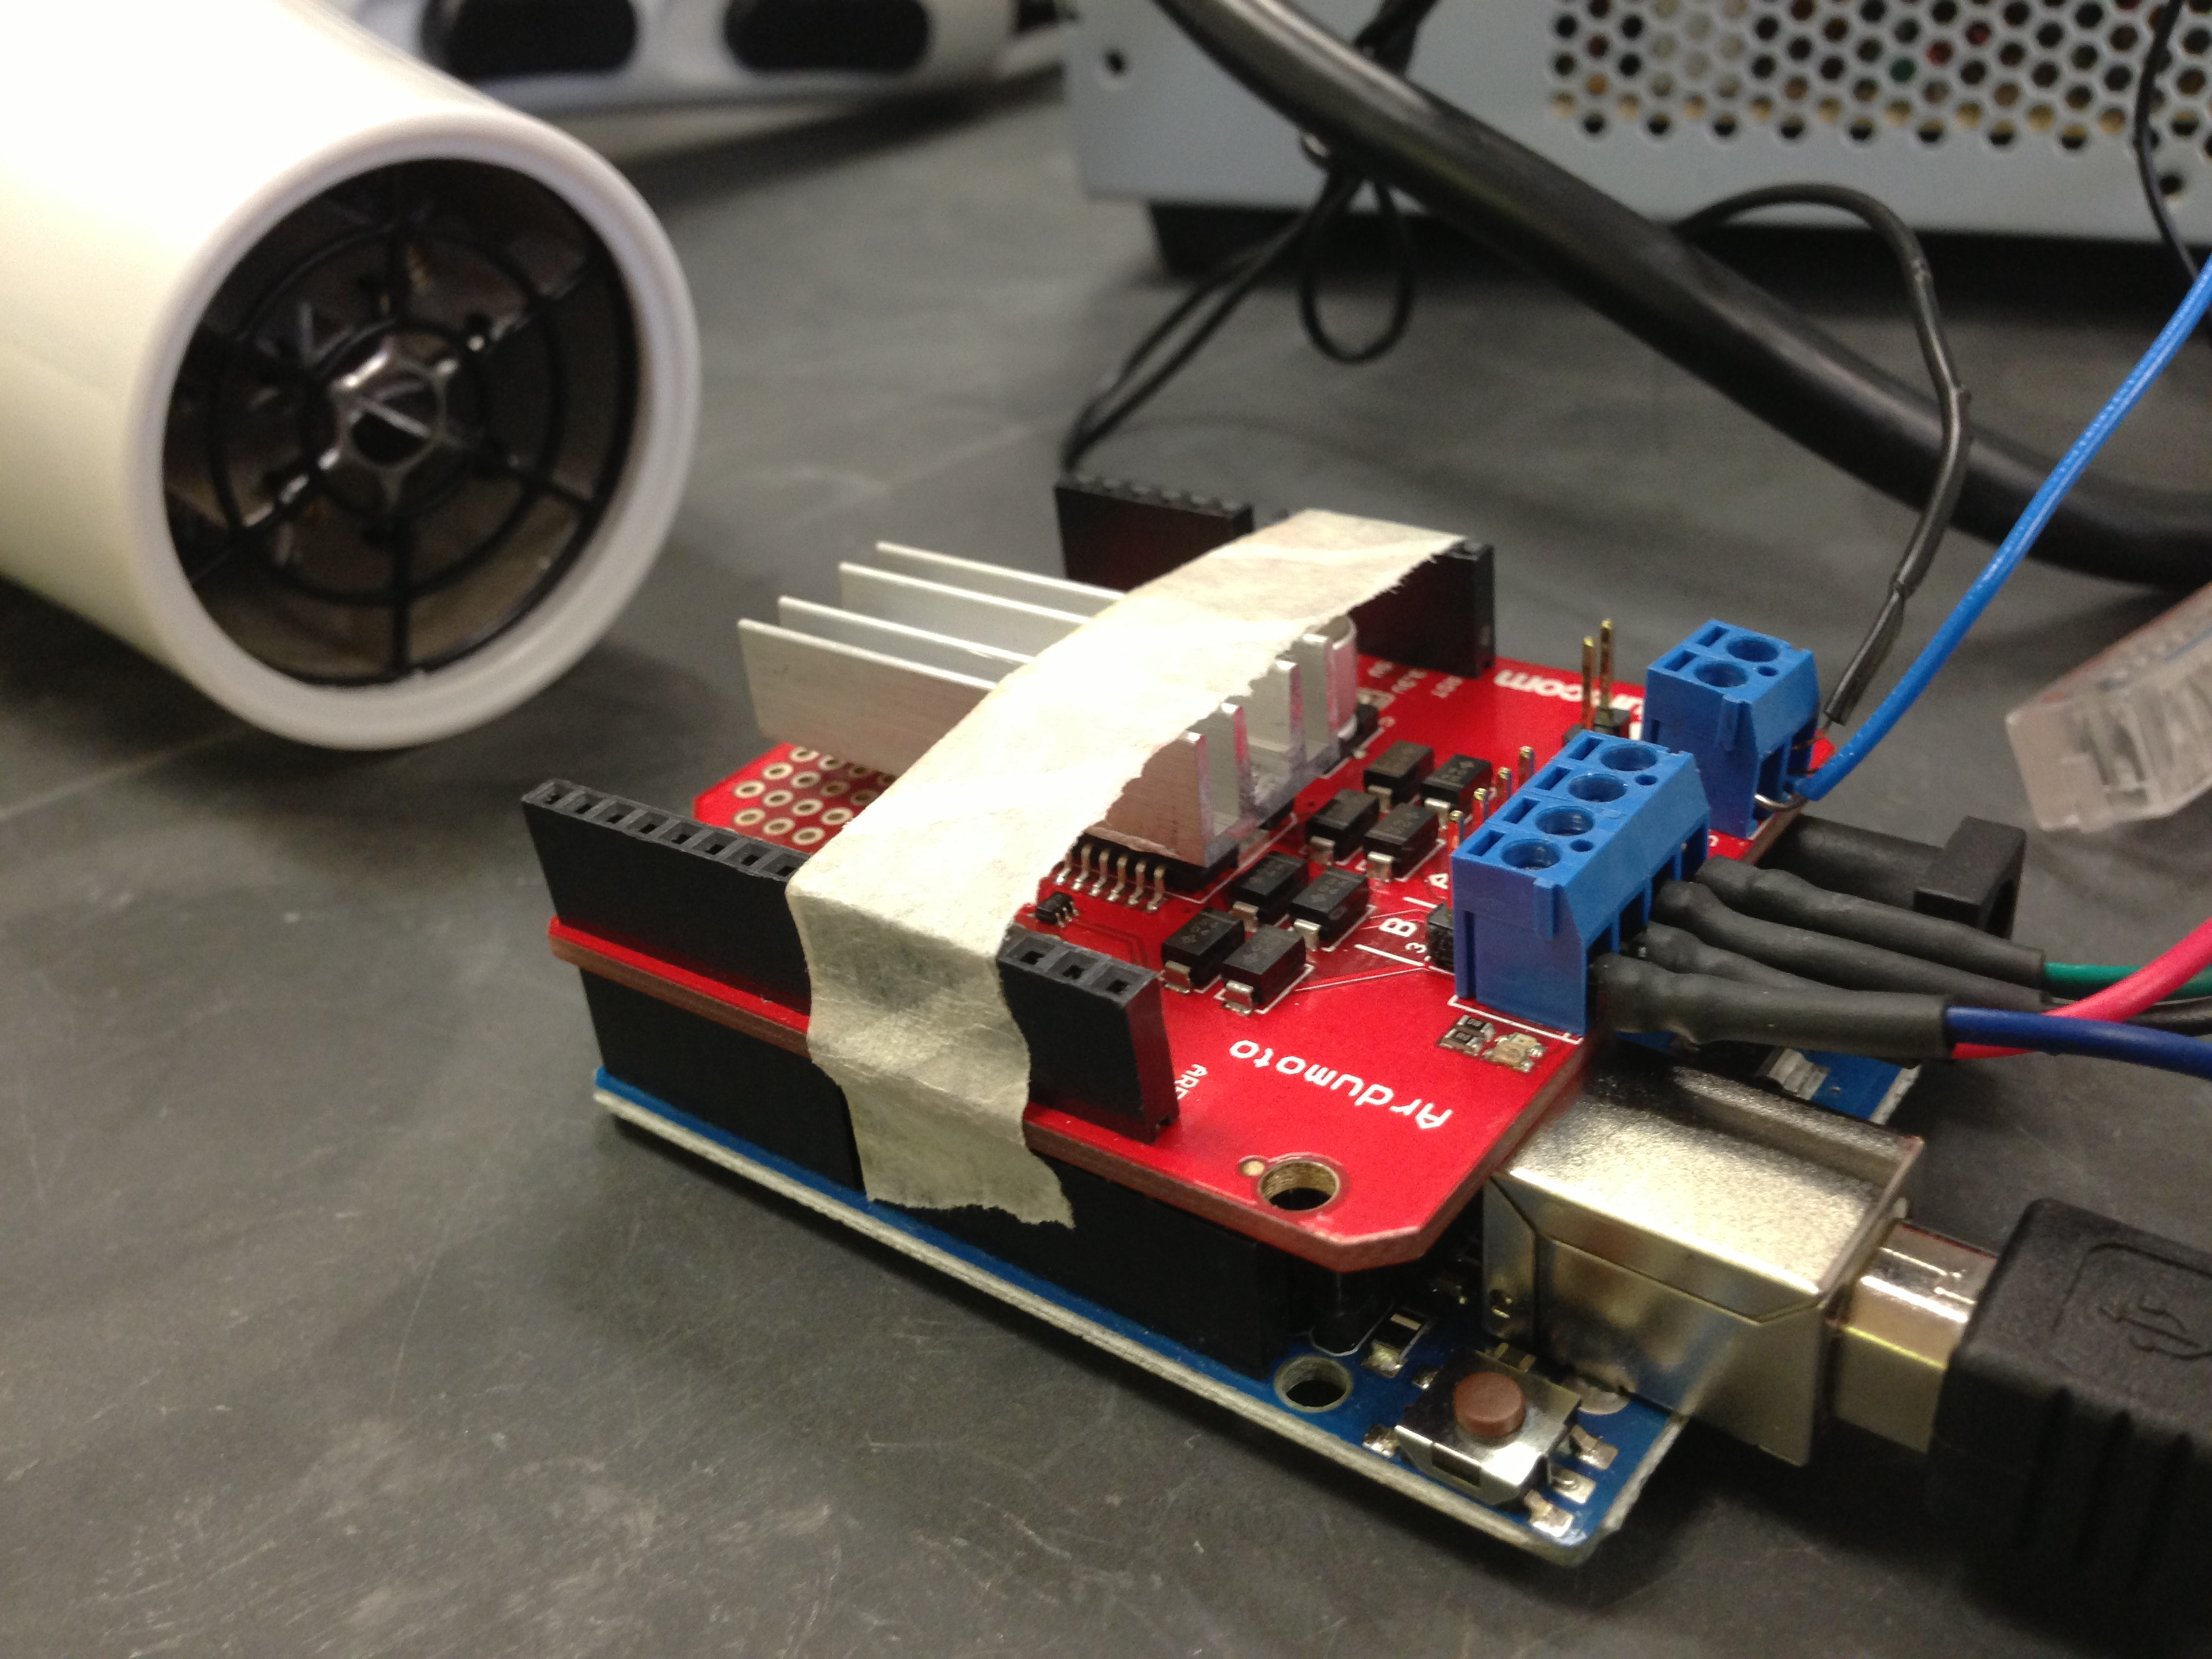 Success with stepper motor by using ATX power supply and heat sink ...